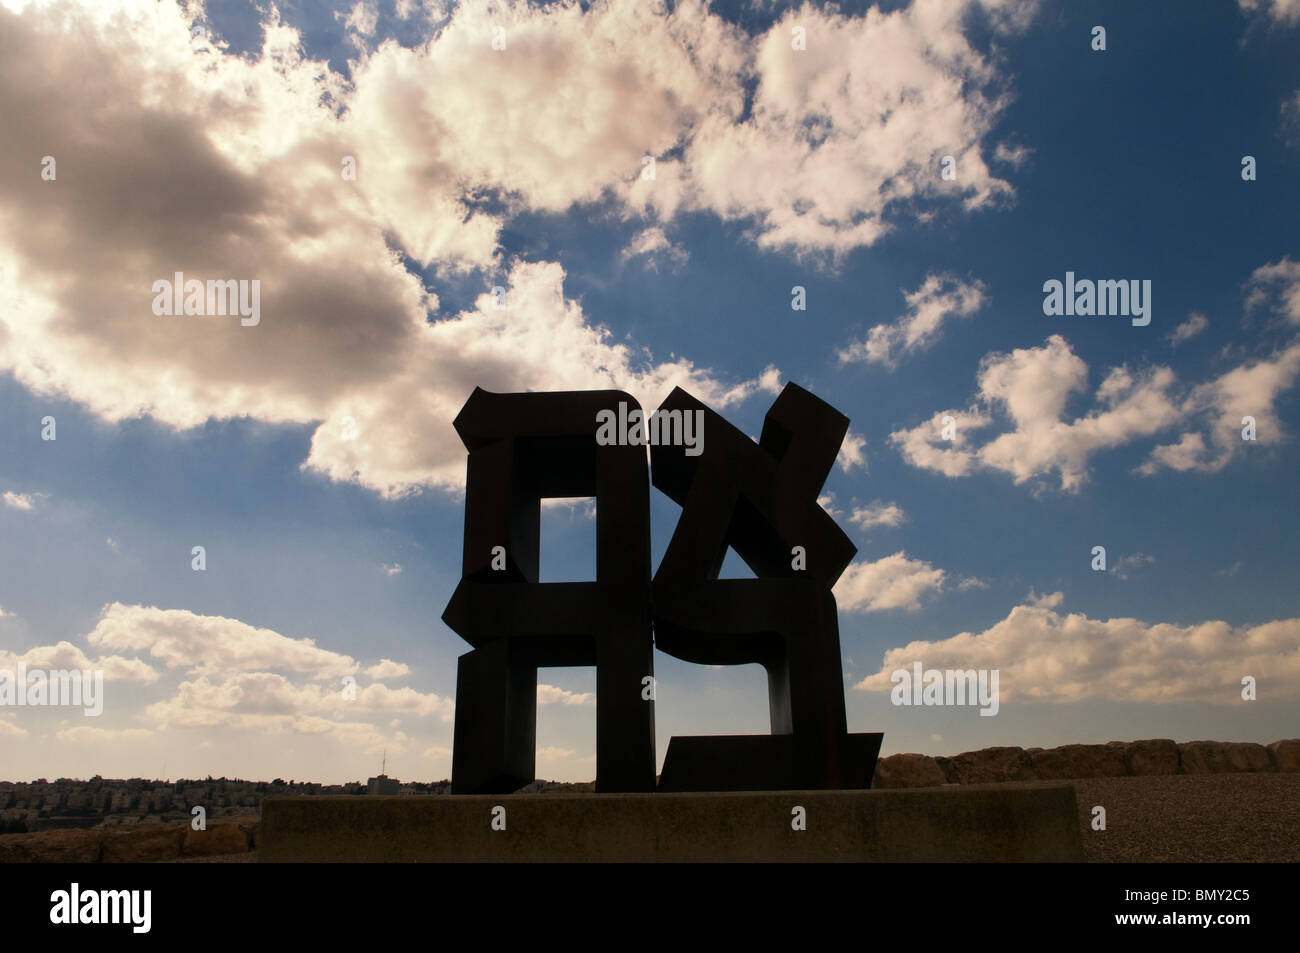 Ahava ( Love ) sculpture by Robert Indiana 1977 depicting Hebrew letters forming that word in Billy Rose sculpture - Stock Image